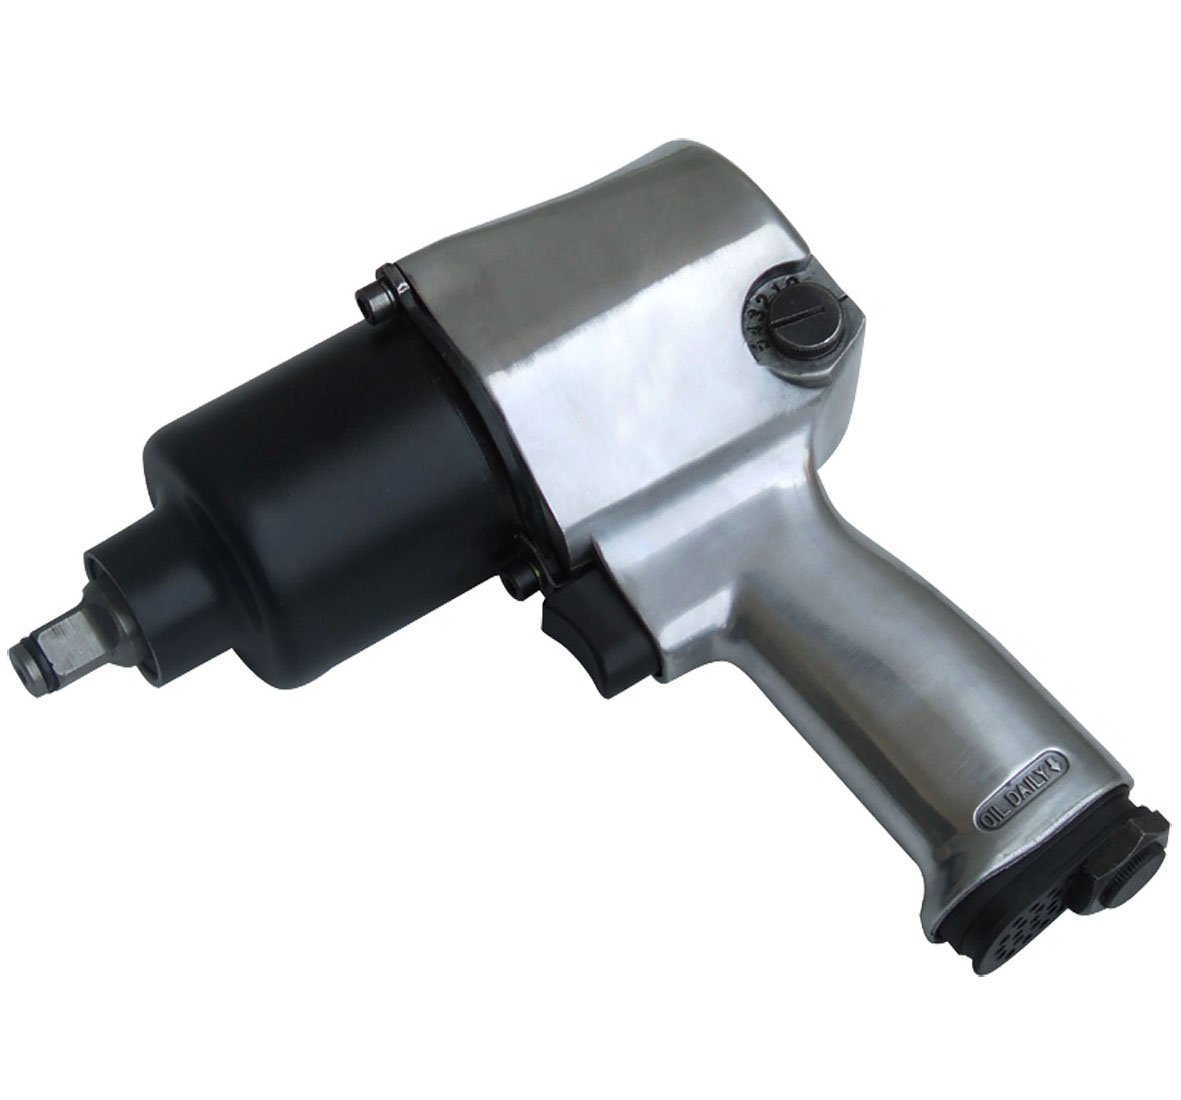 Speedway 45083 Twin Hammer Air Impact Wrench, 1/2''